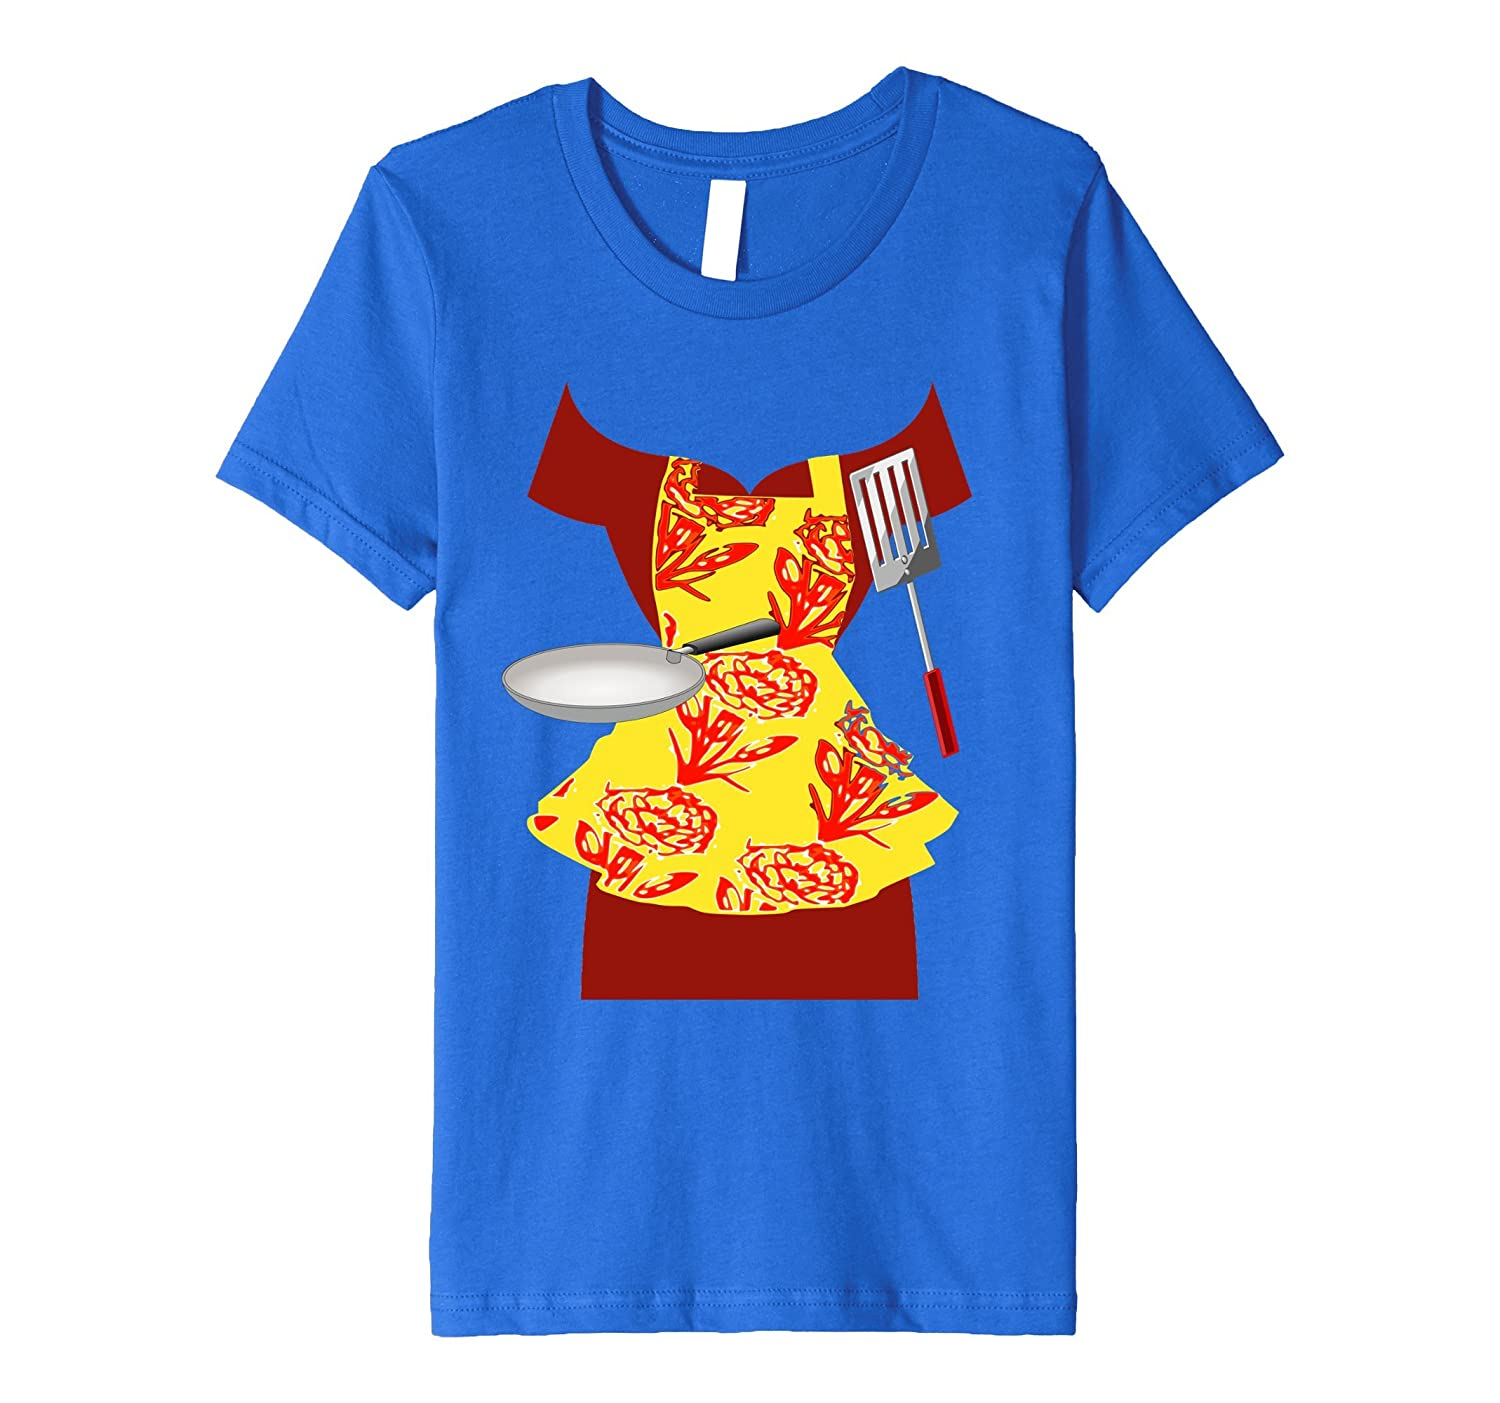 Homemaker Halloween Costume T-Shirt